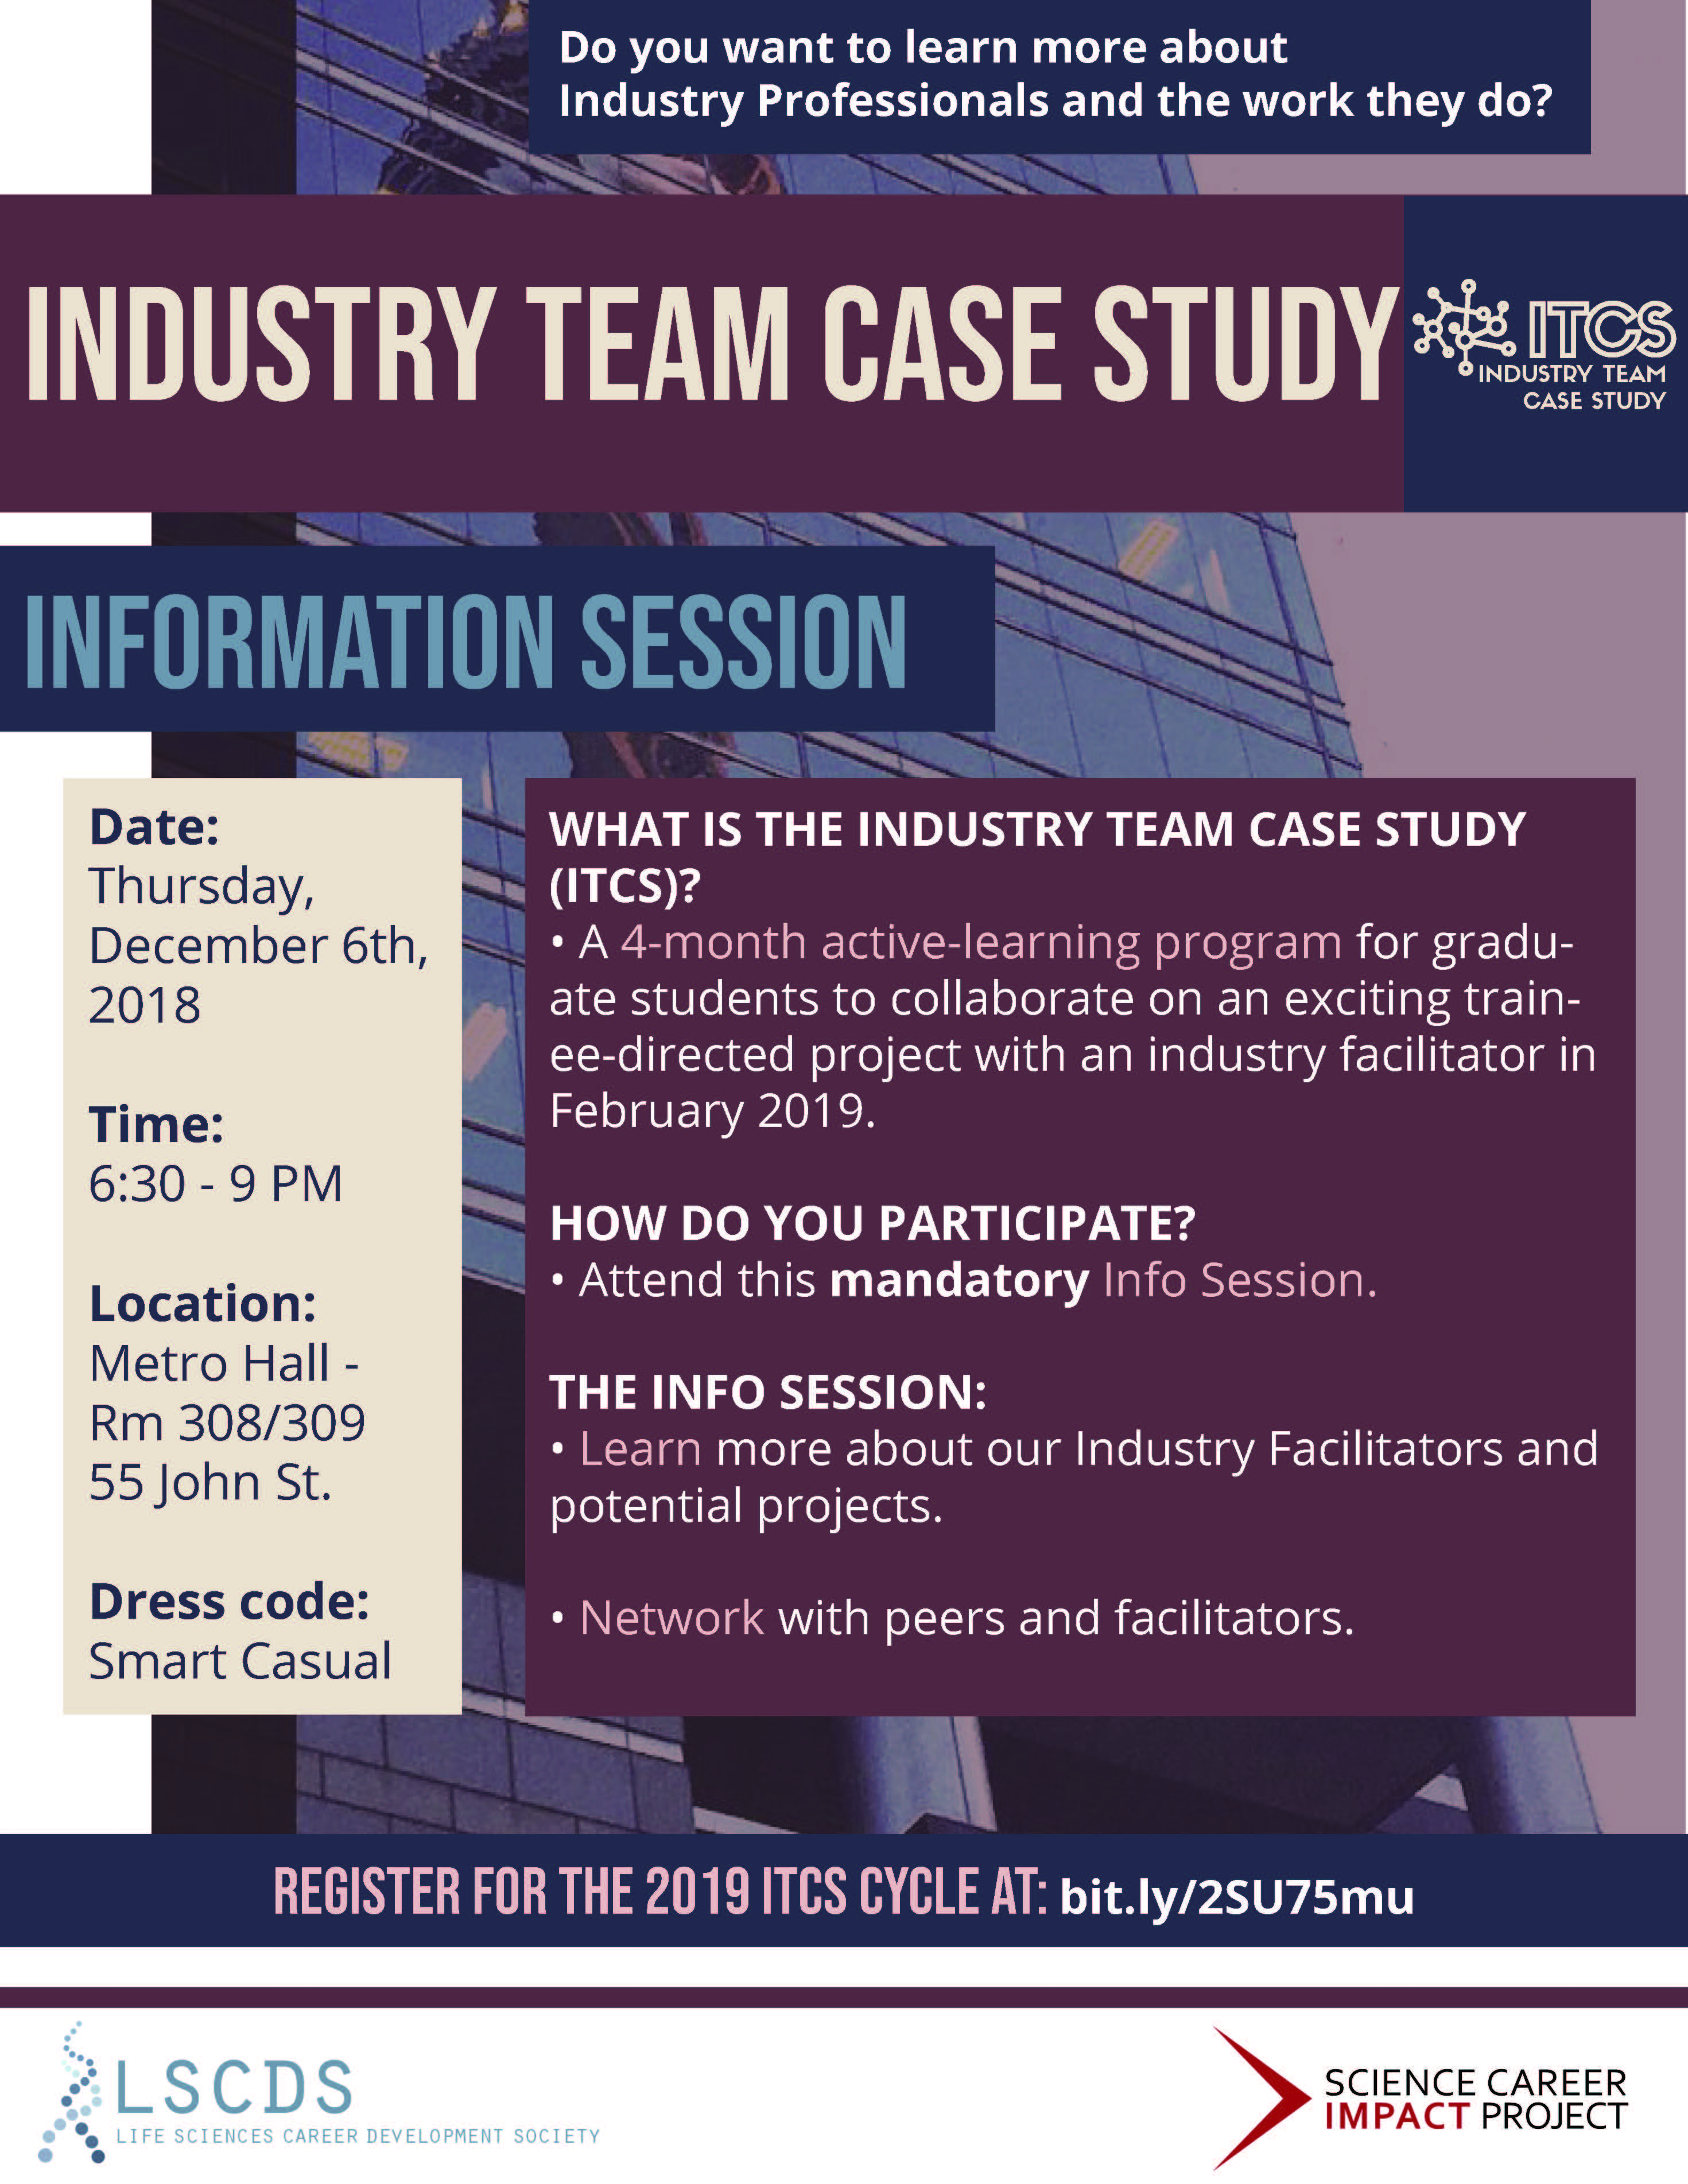 ITCS Info Session